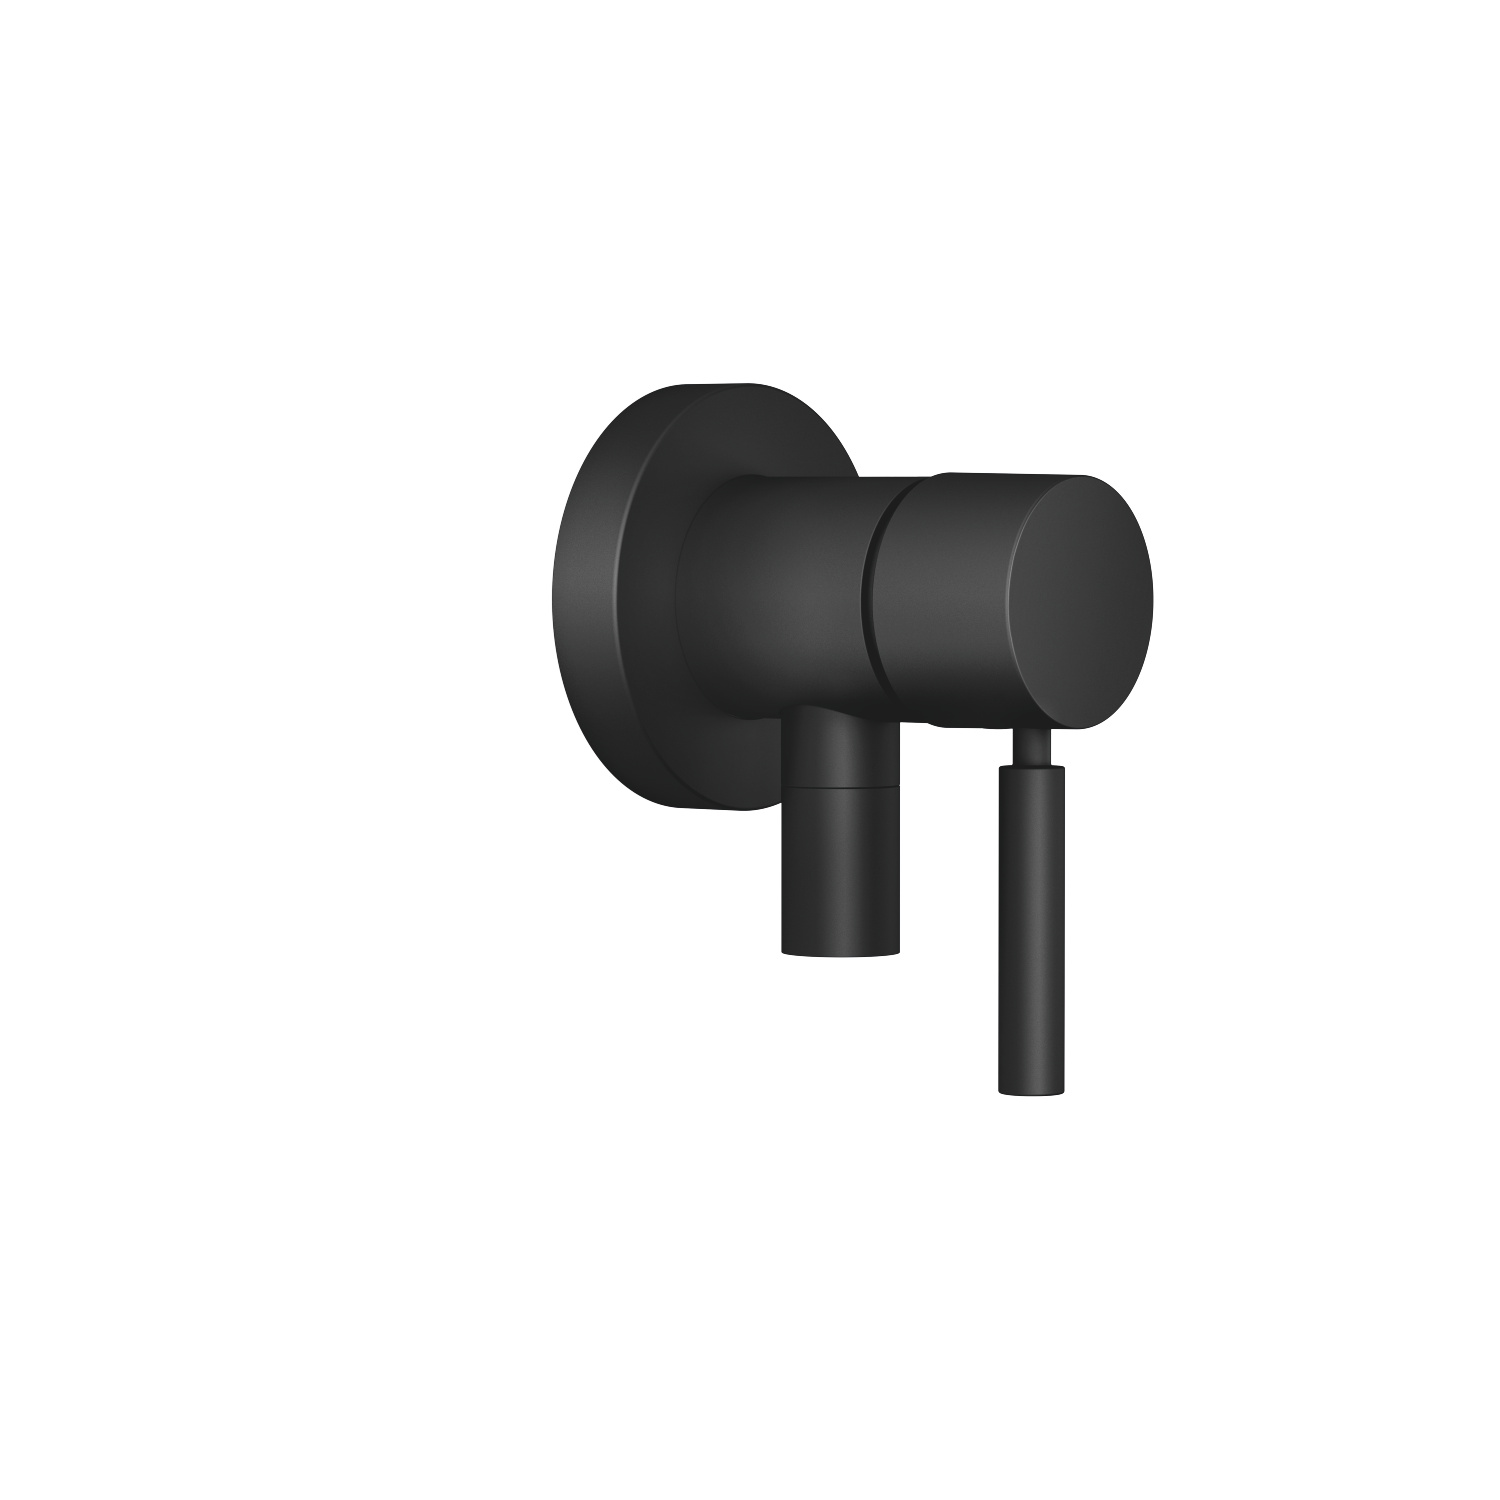 Concealed single-lever mixer with cover plate with integrated shower connection - matt black - 36 045 660-33